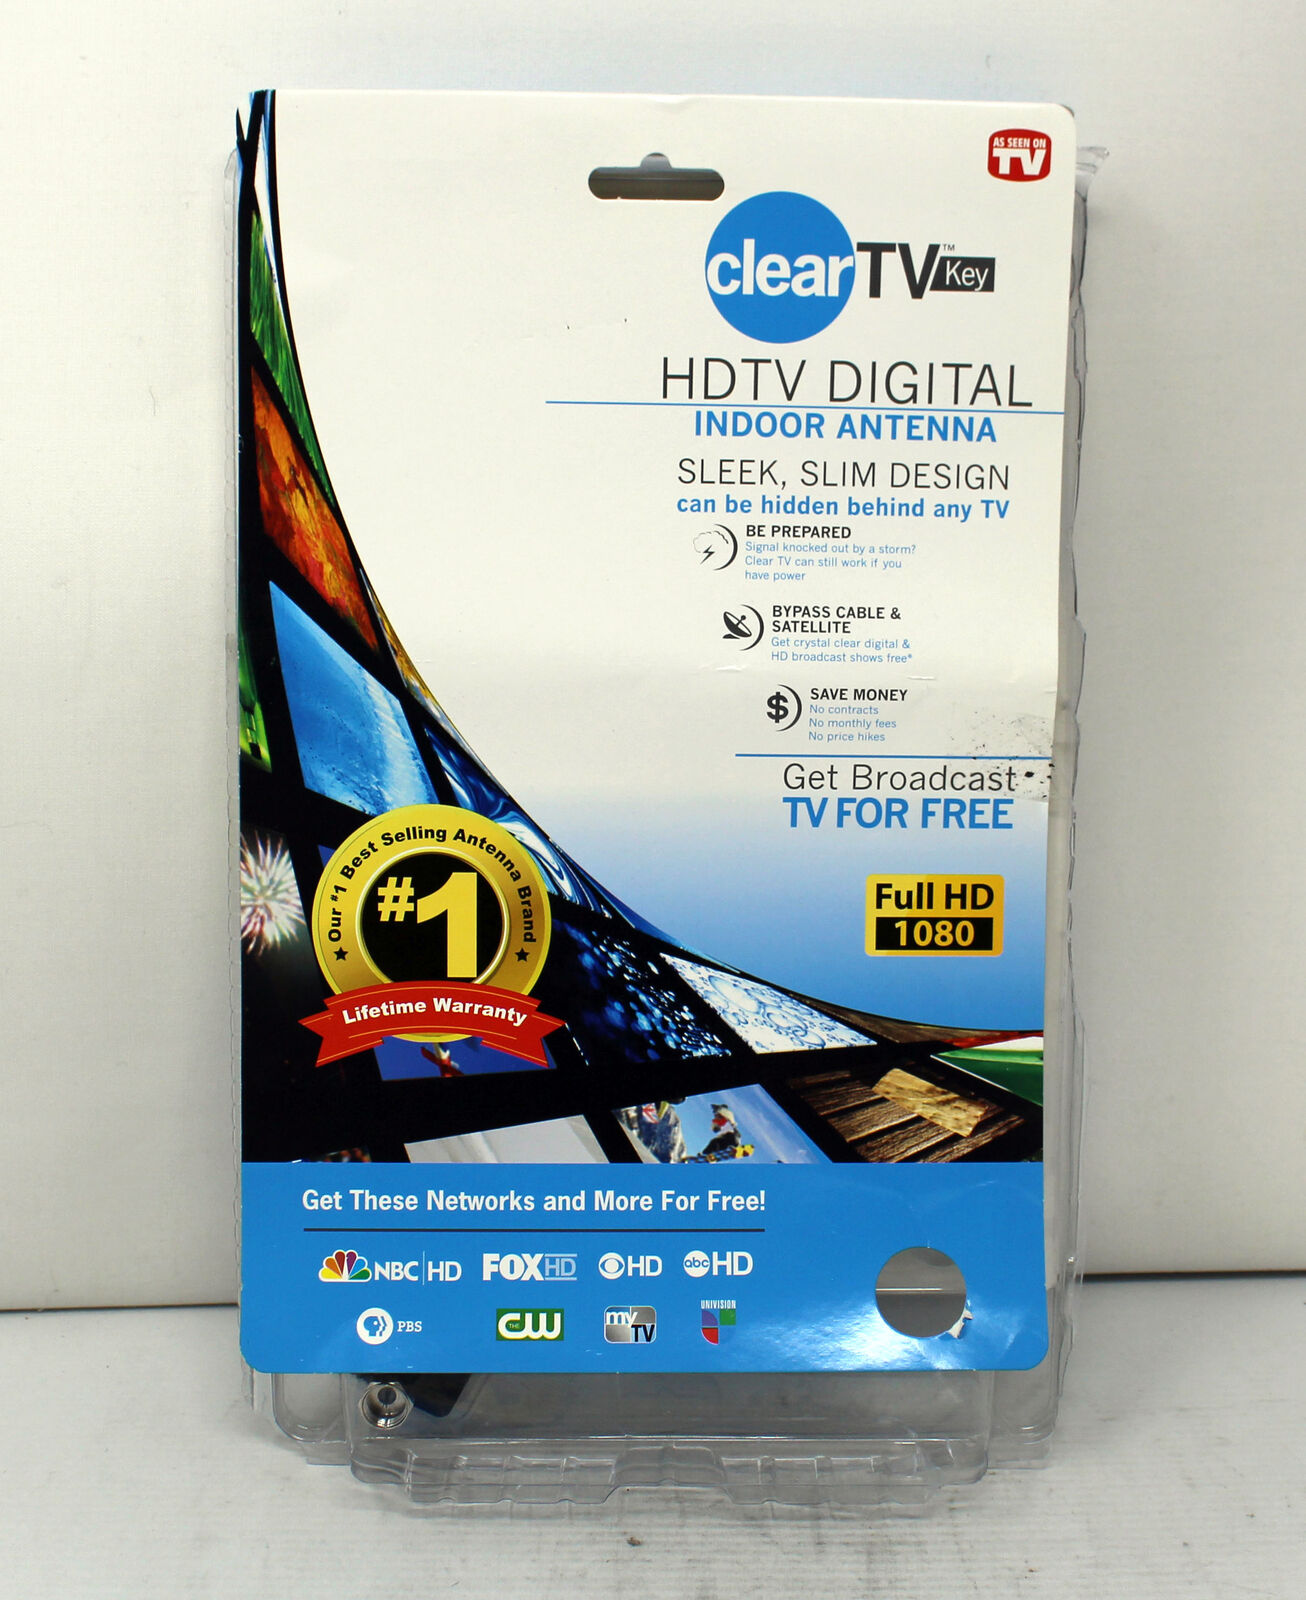 Clear TV Key HDTV FREE TV Digital Indoor Antenna Ditch Cable As Seen on TVF2